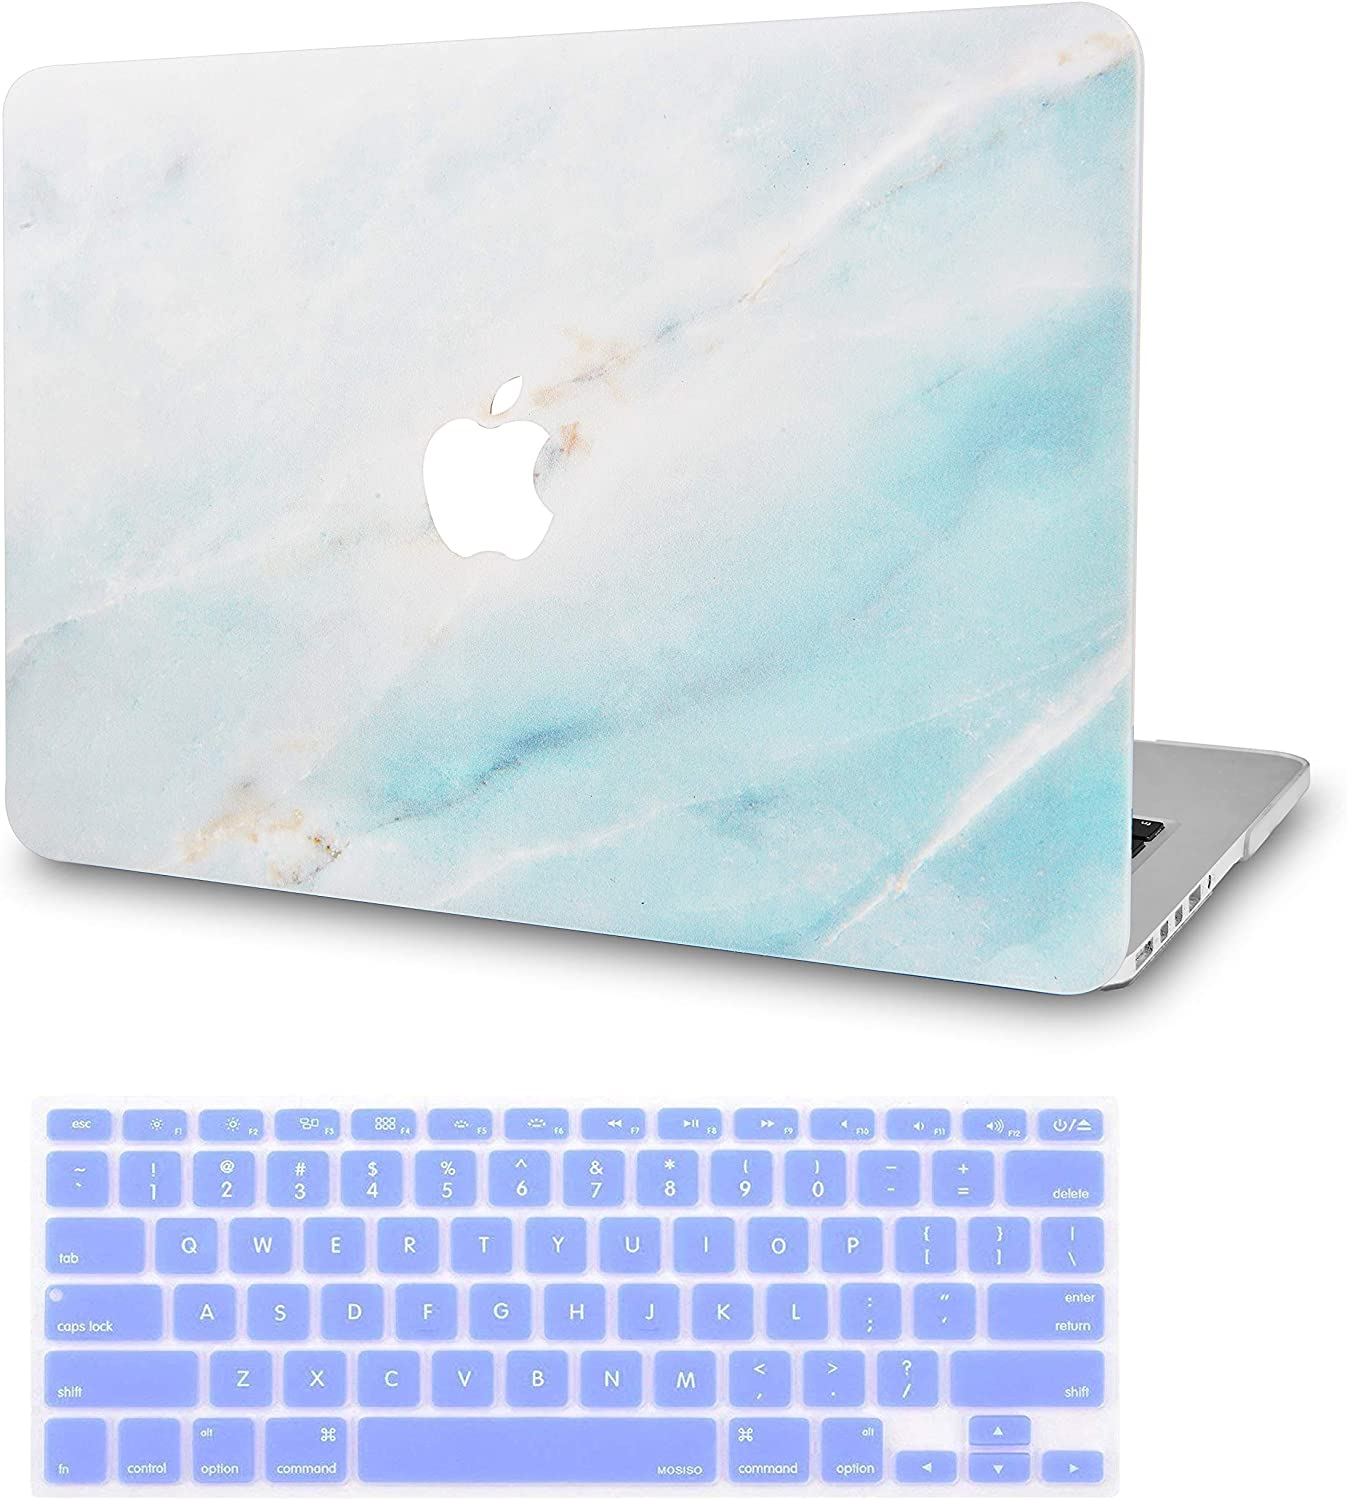 """LuvCase 2 in 1 Laptop Case for Old MacBook Pro 13"""" Retina Display (2015/2014/2013/2012) A1502/A1425 Rubberized Plastic Hard Shell Cover&Keyboard Cover (Mint Marble)"""